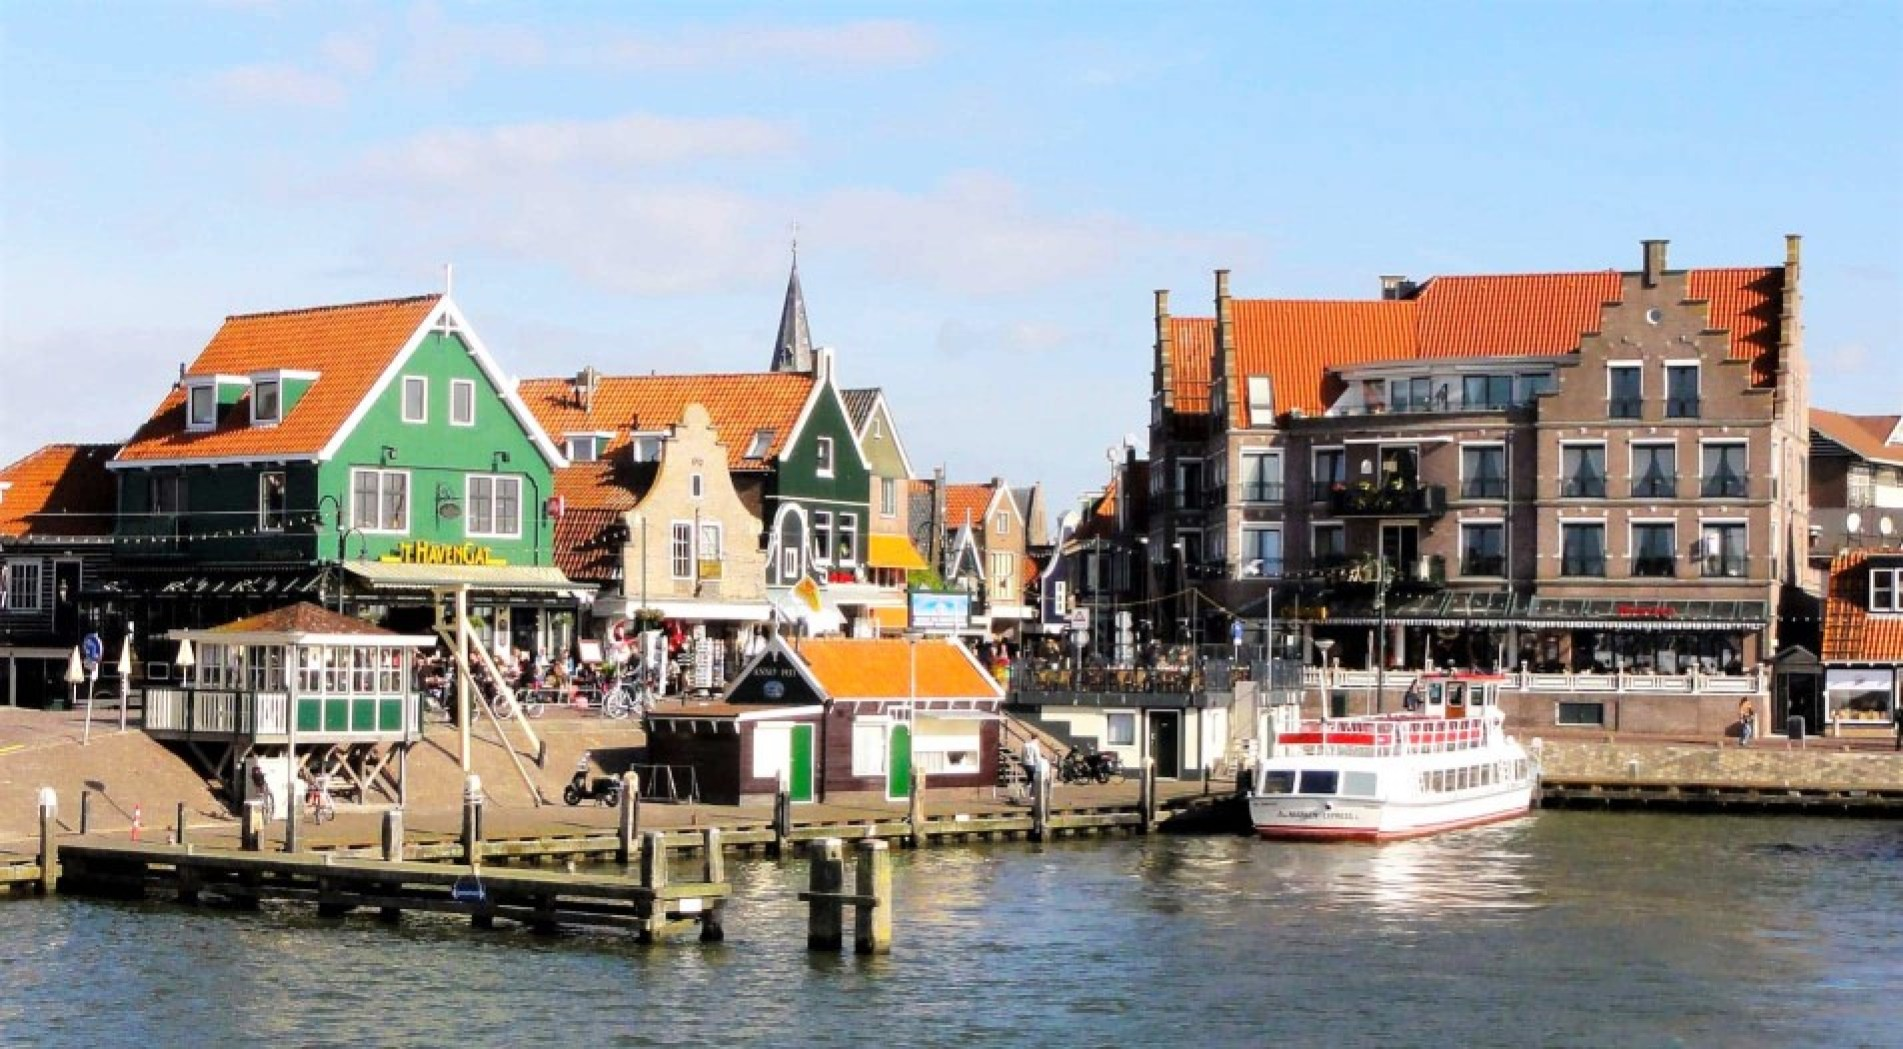 PLACES TO VISIT IN THE NETHERLANDS